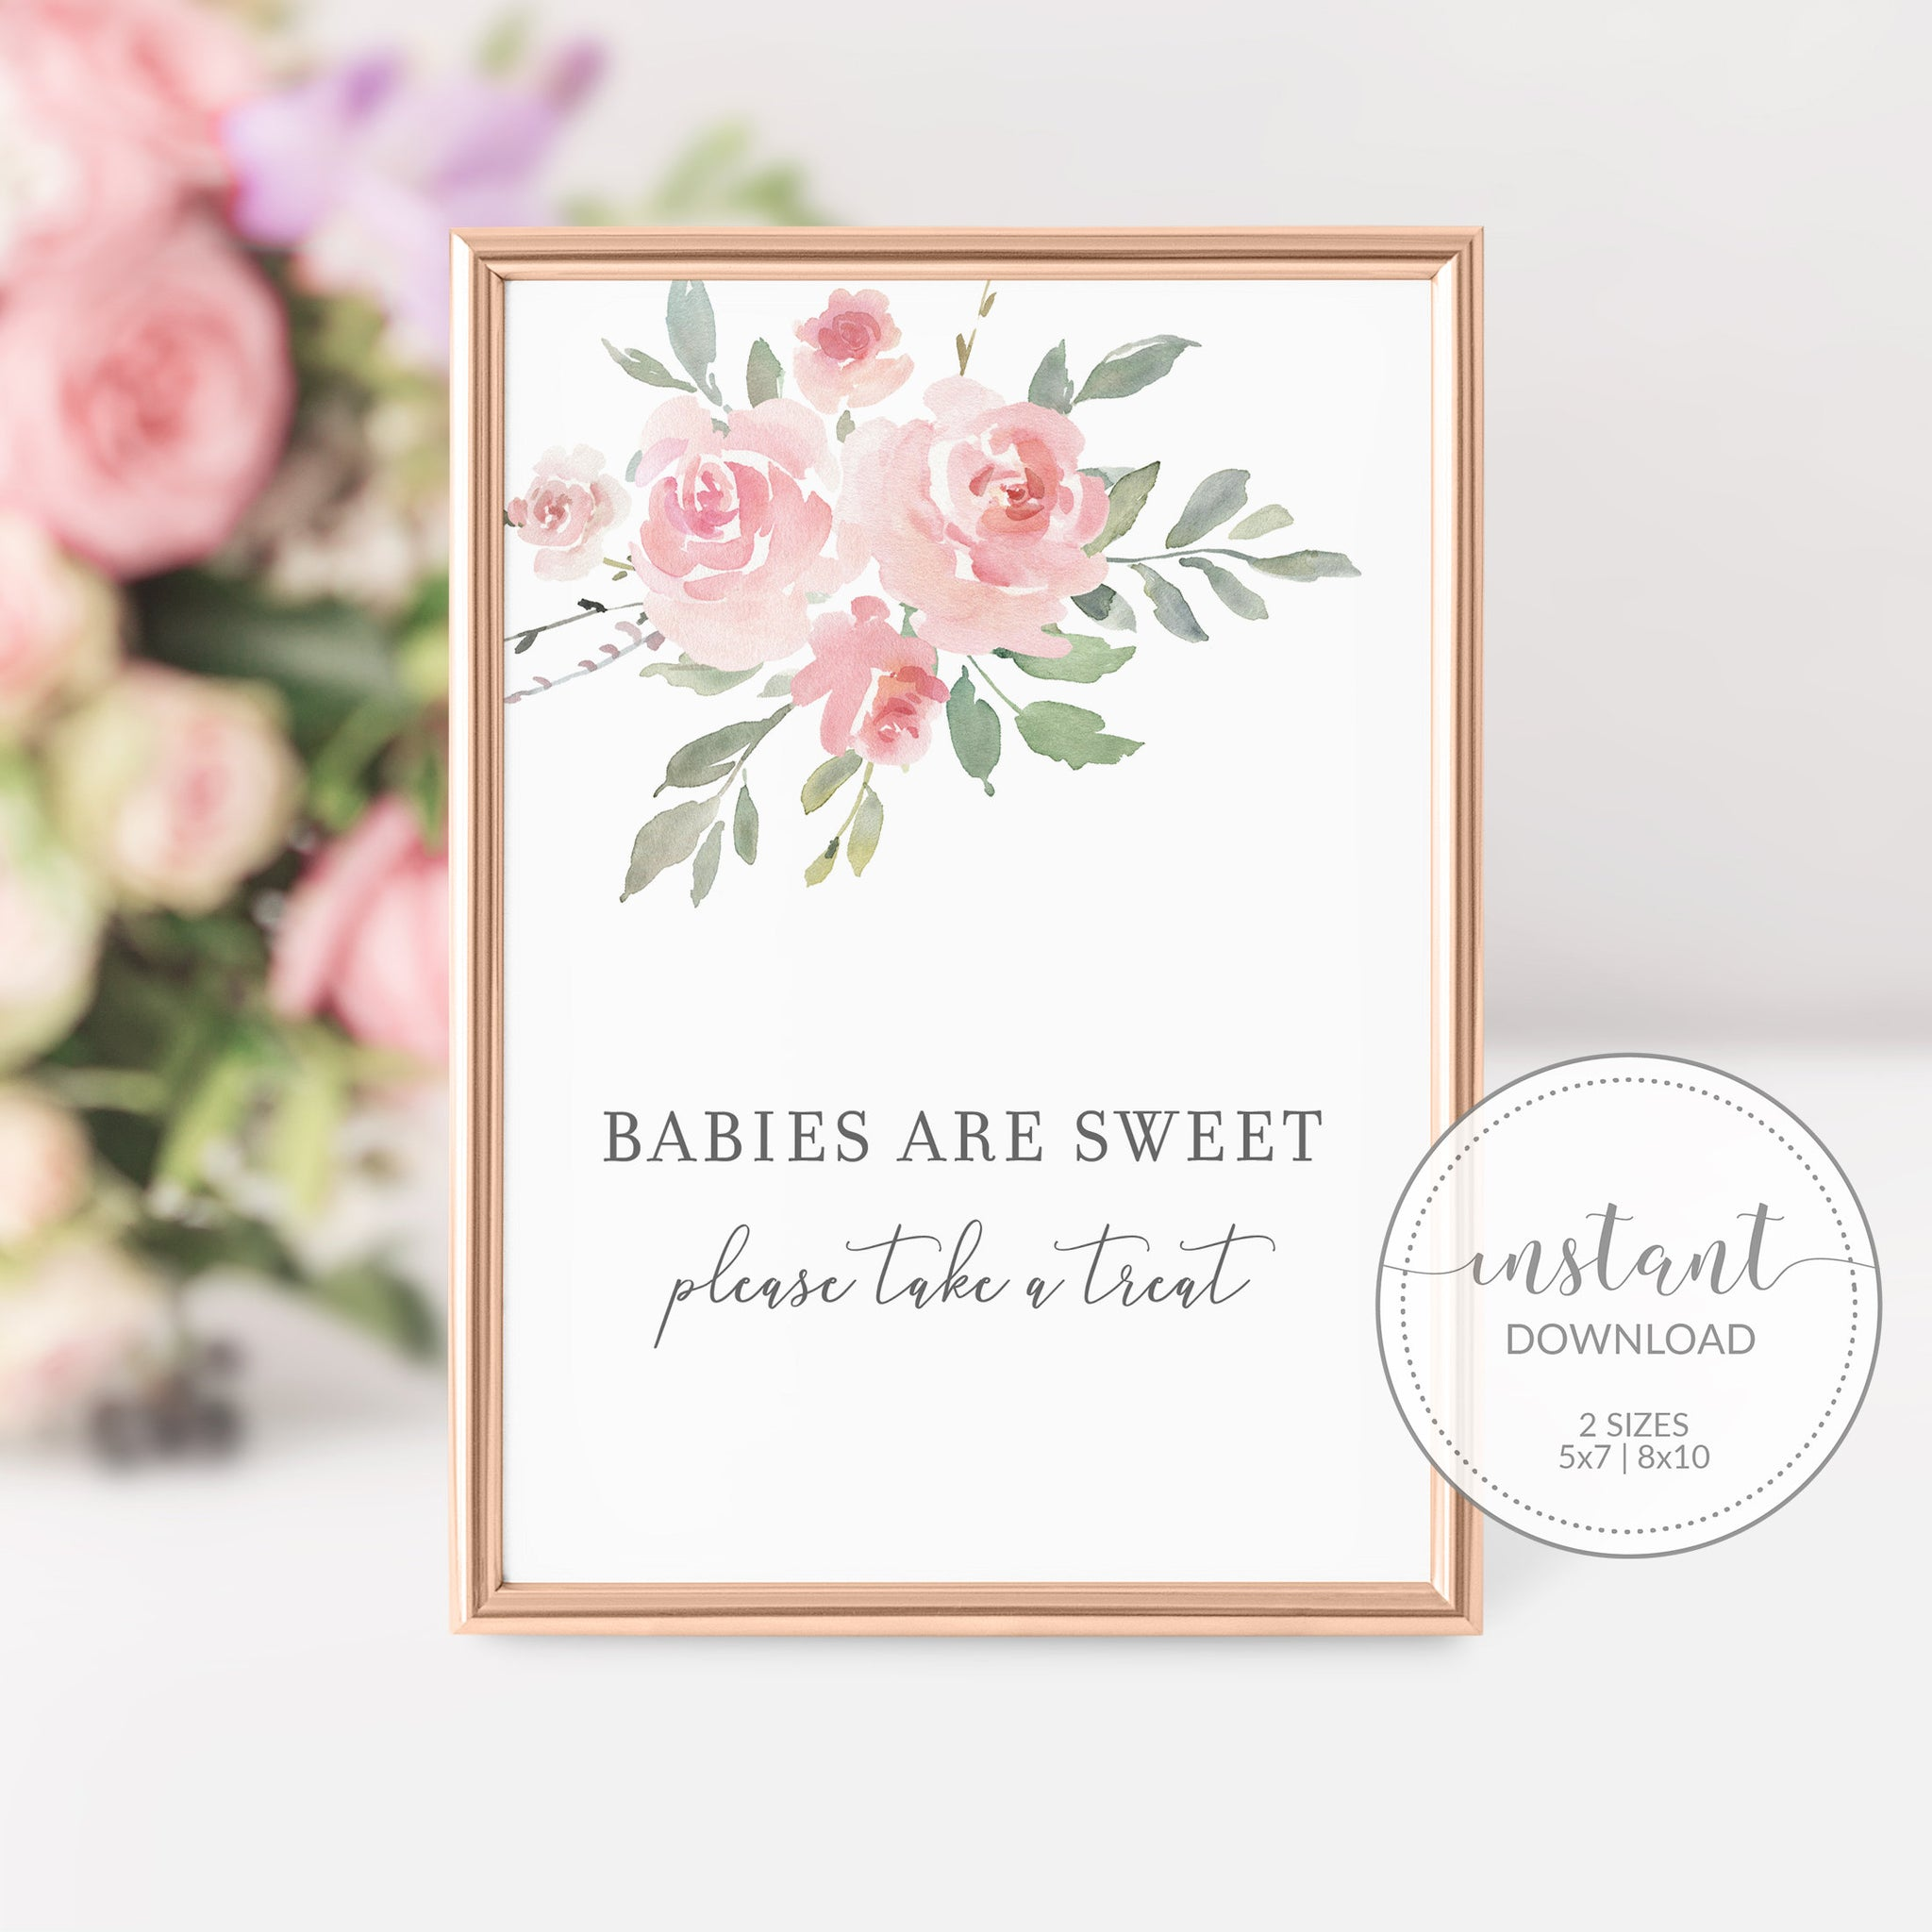 Baby Shower Treat Sign, Baby Shower Dessert Table Sign, Floral Baby Shower Decorations, DIGITAL DOWNLOAD - FR100